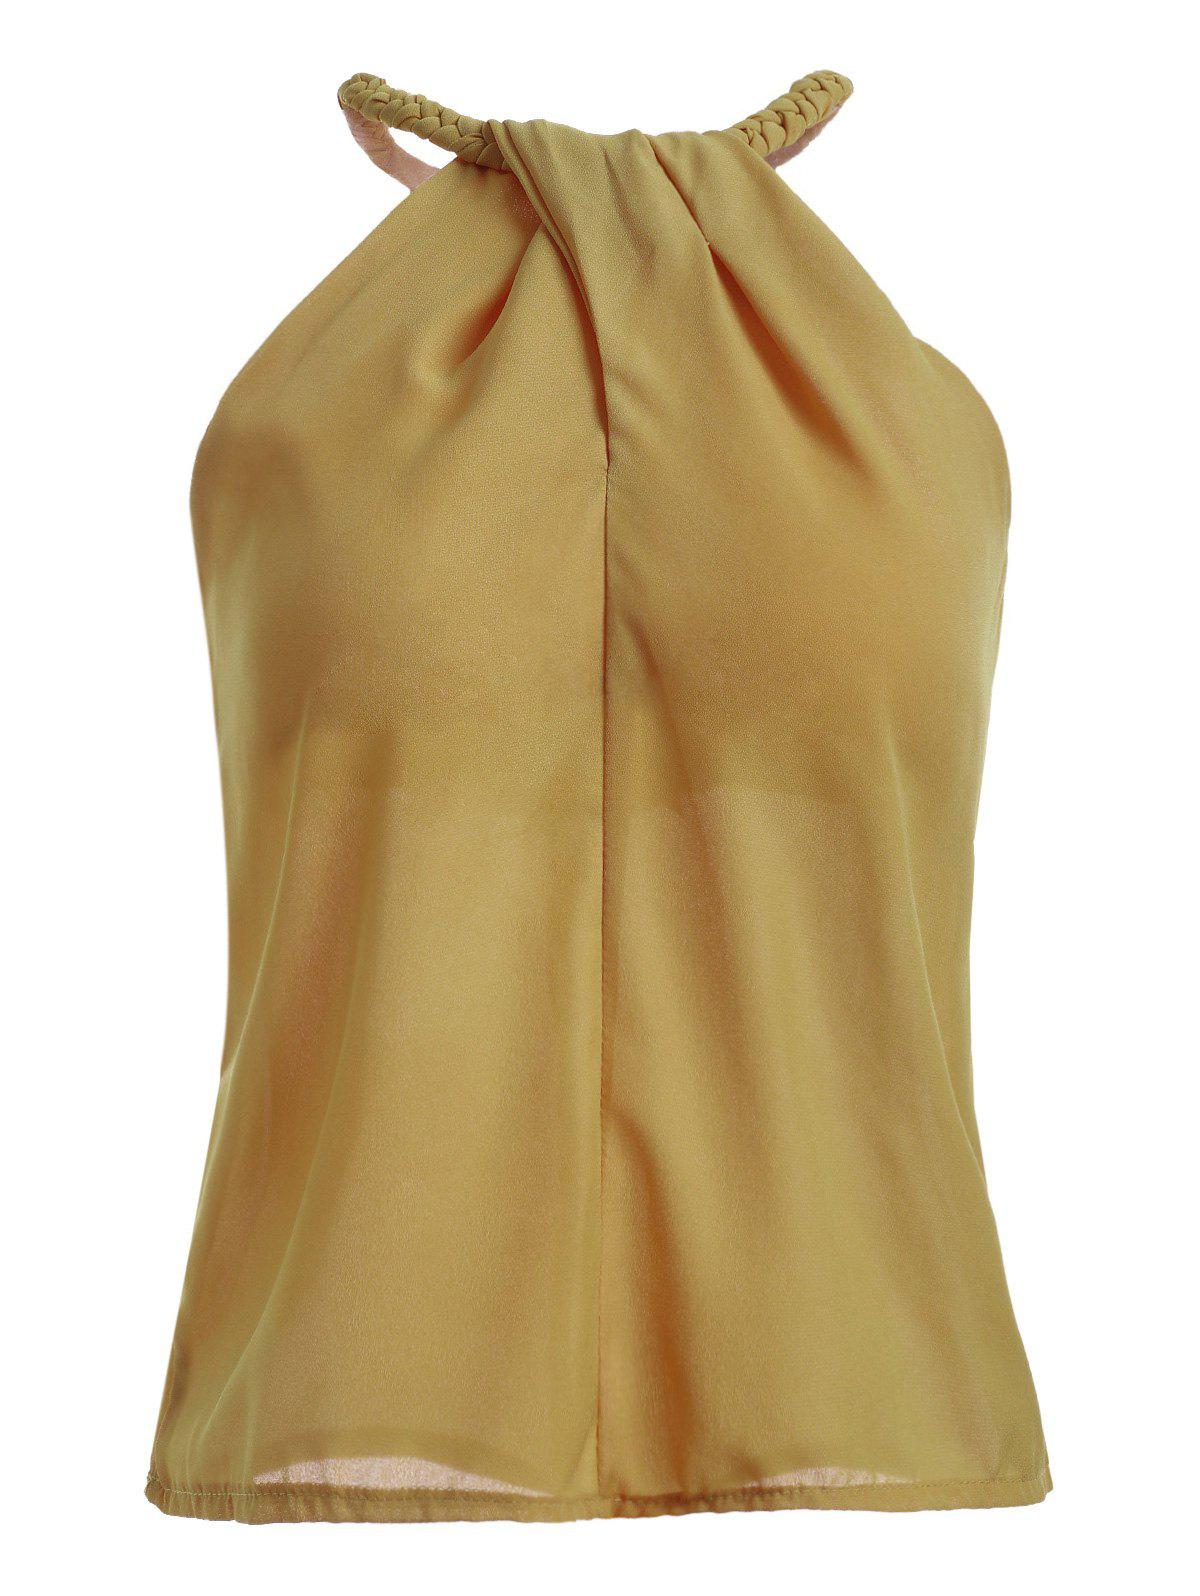 Stylish Solid Color Women's Tank Top - SOIL ONE SIZE(FIT SIZE XS TO M)